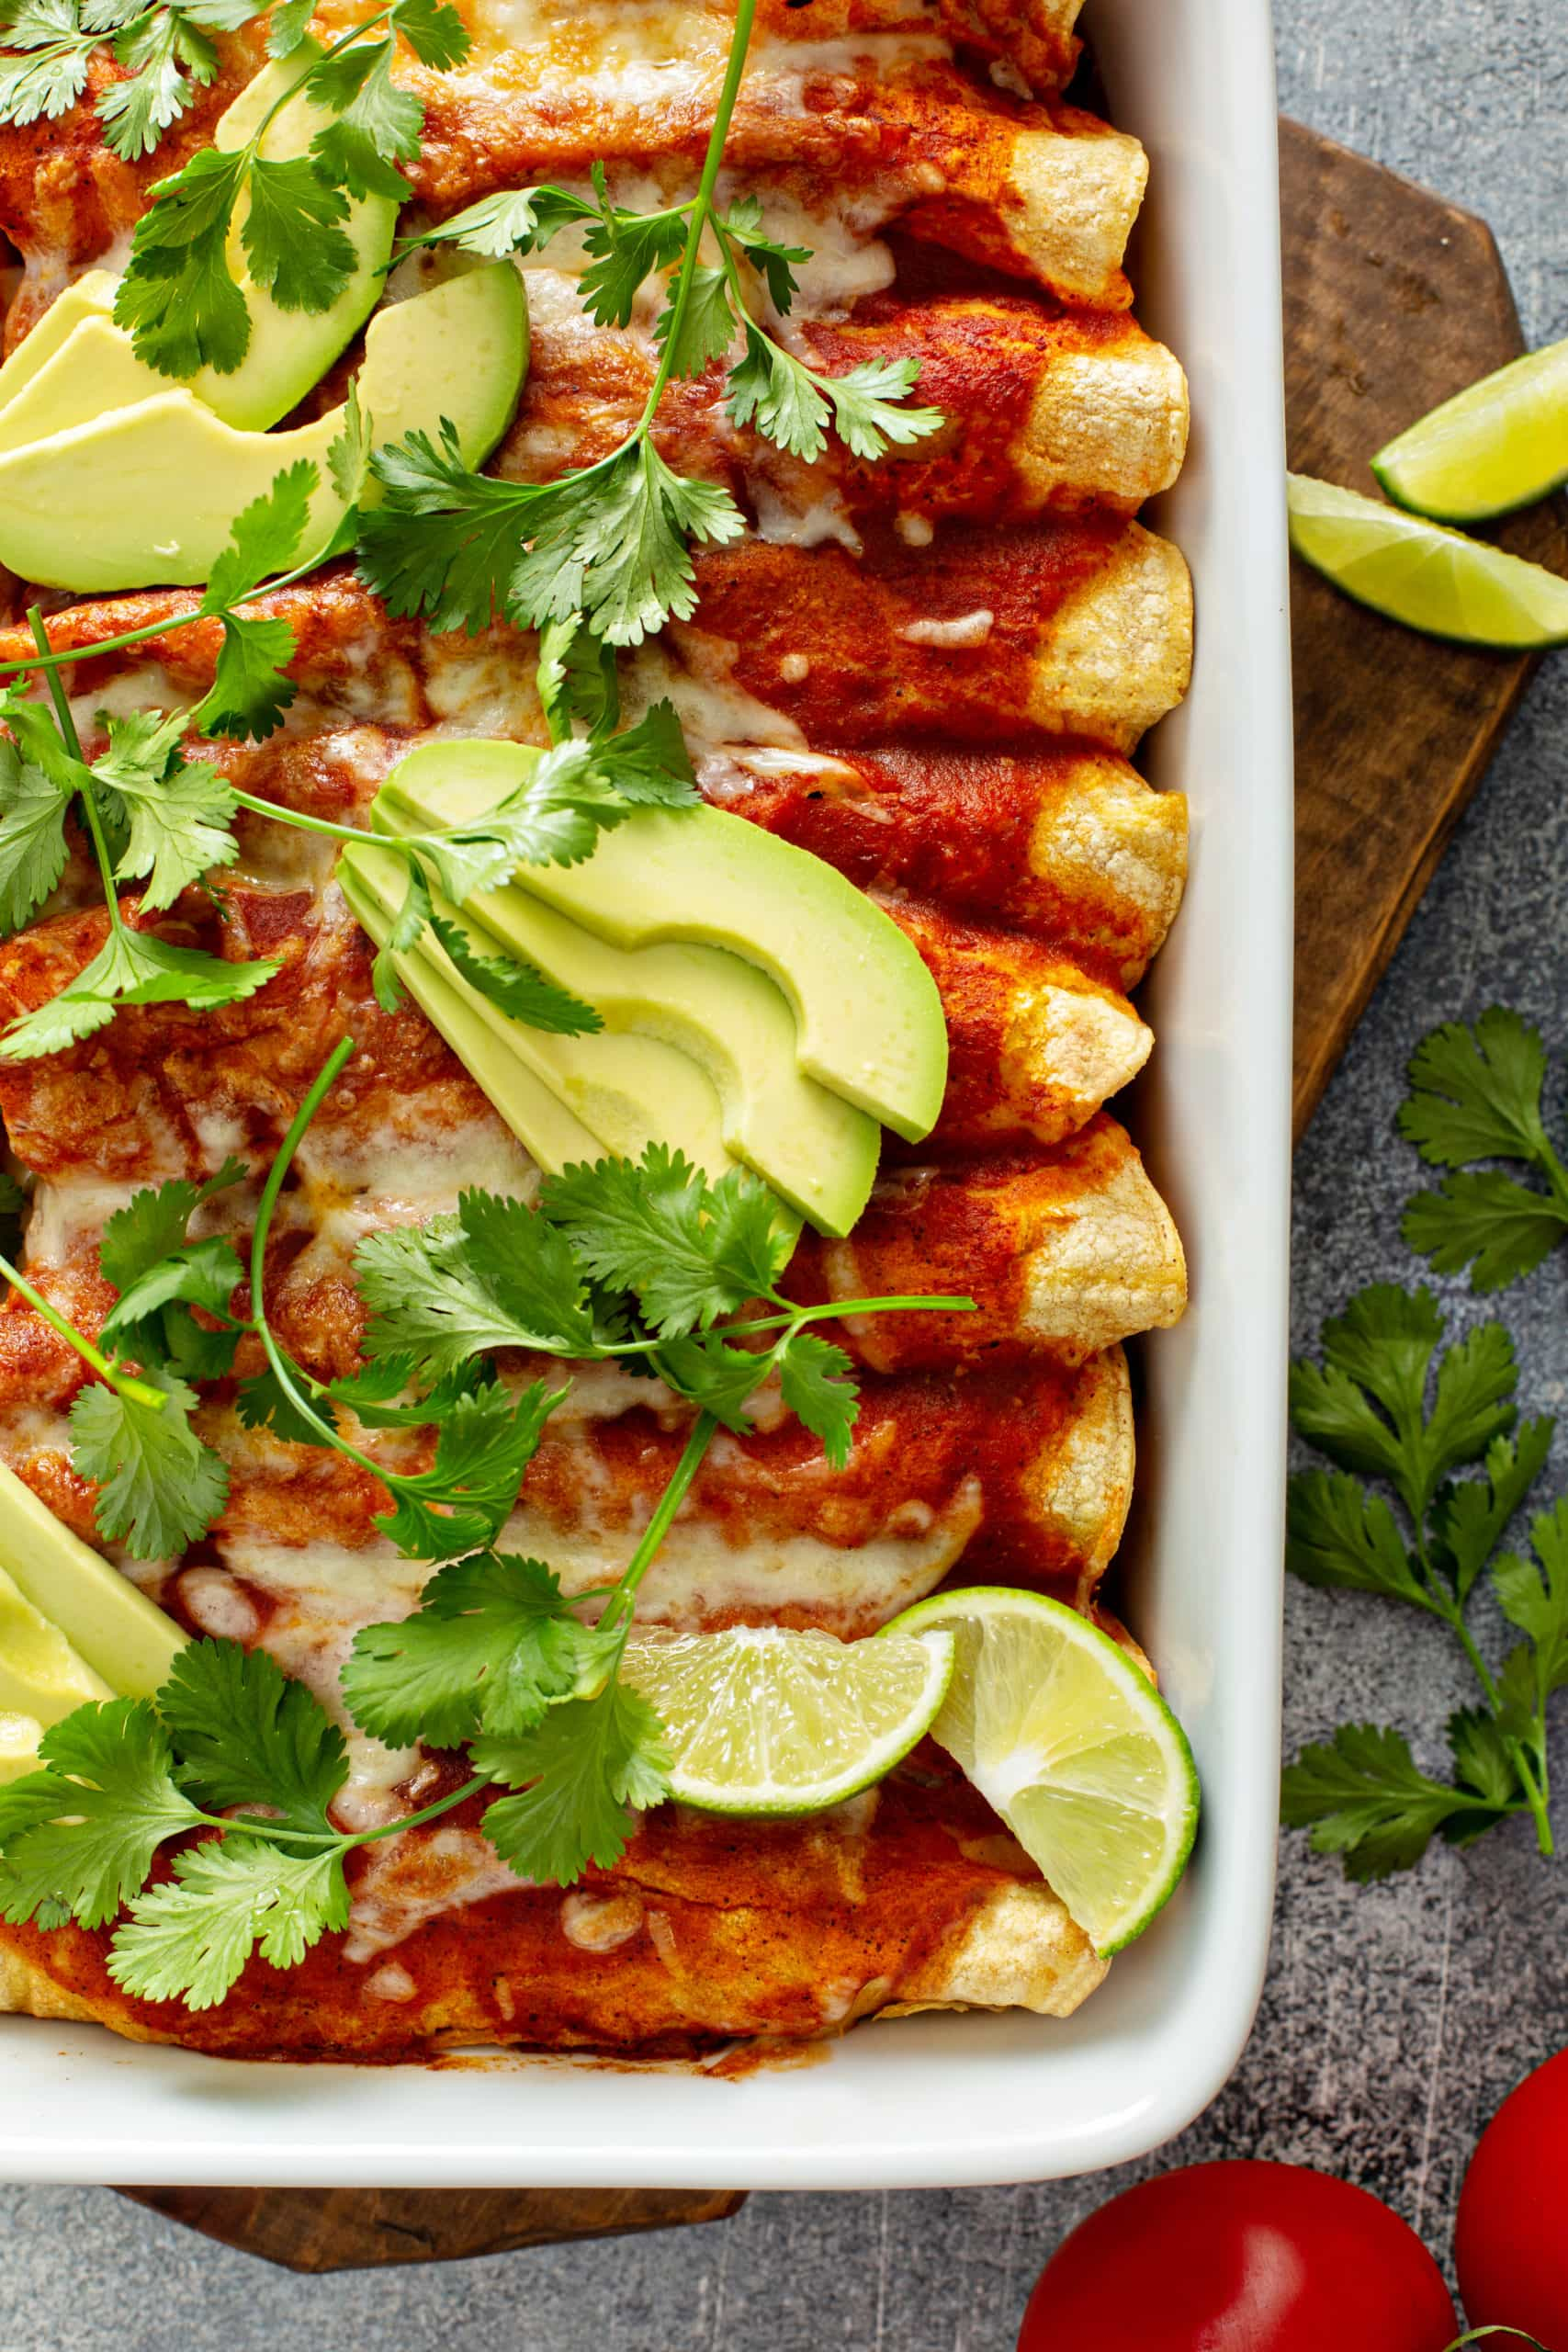 A casserole dish full of enchiladas. They are topped with red enchilada sauce, sliced avocados, and cilantro leaves. There are lime wedges in the corners. and cilantro leaves on the table next to the casserole.